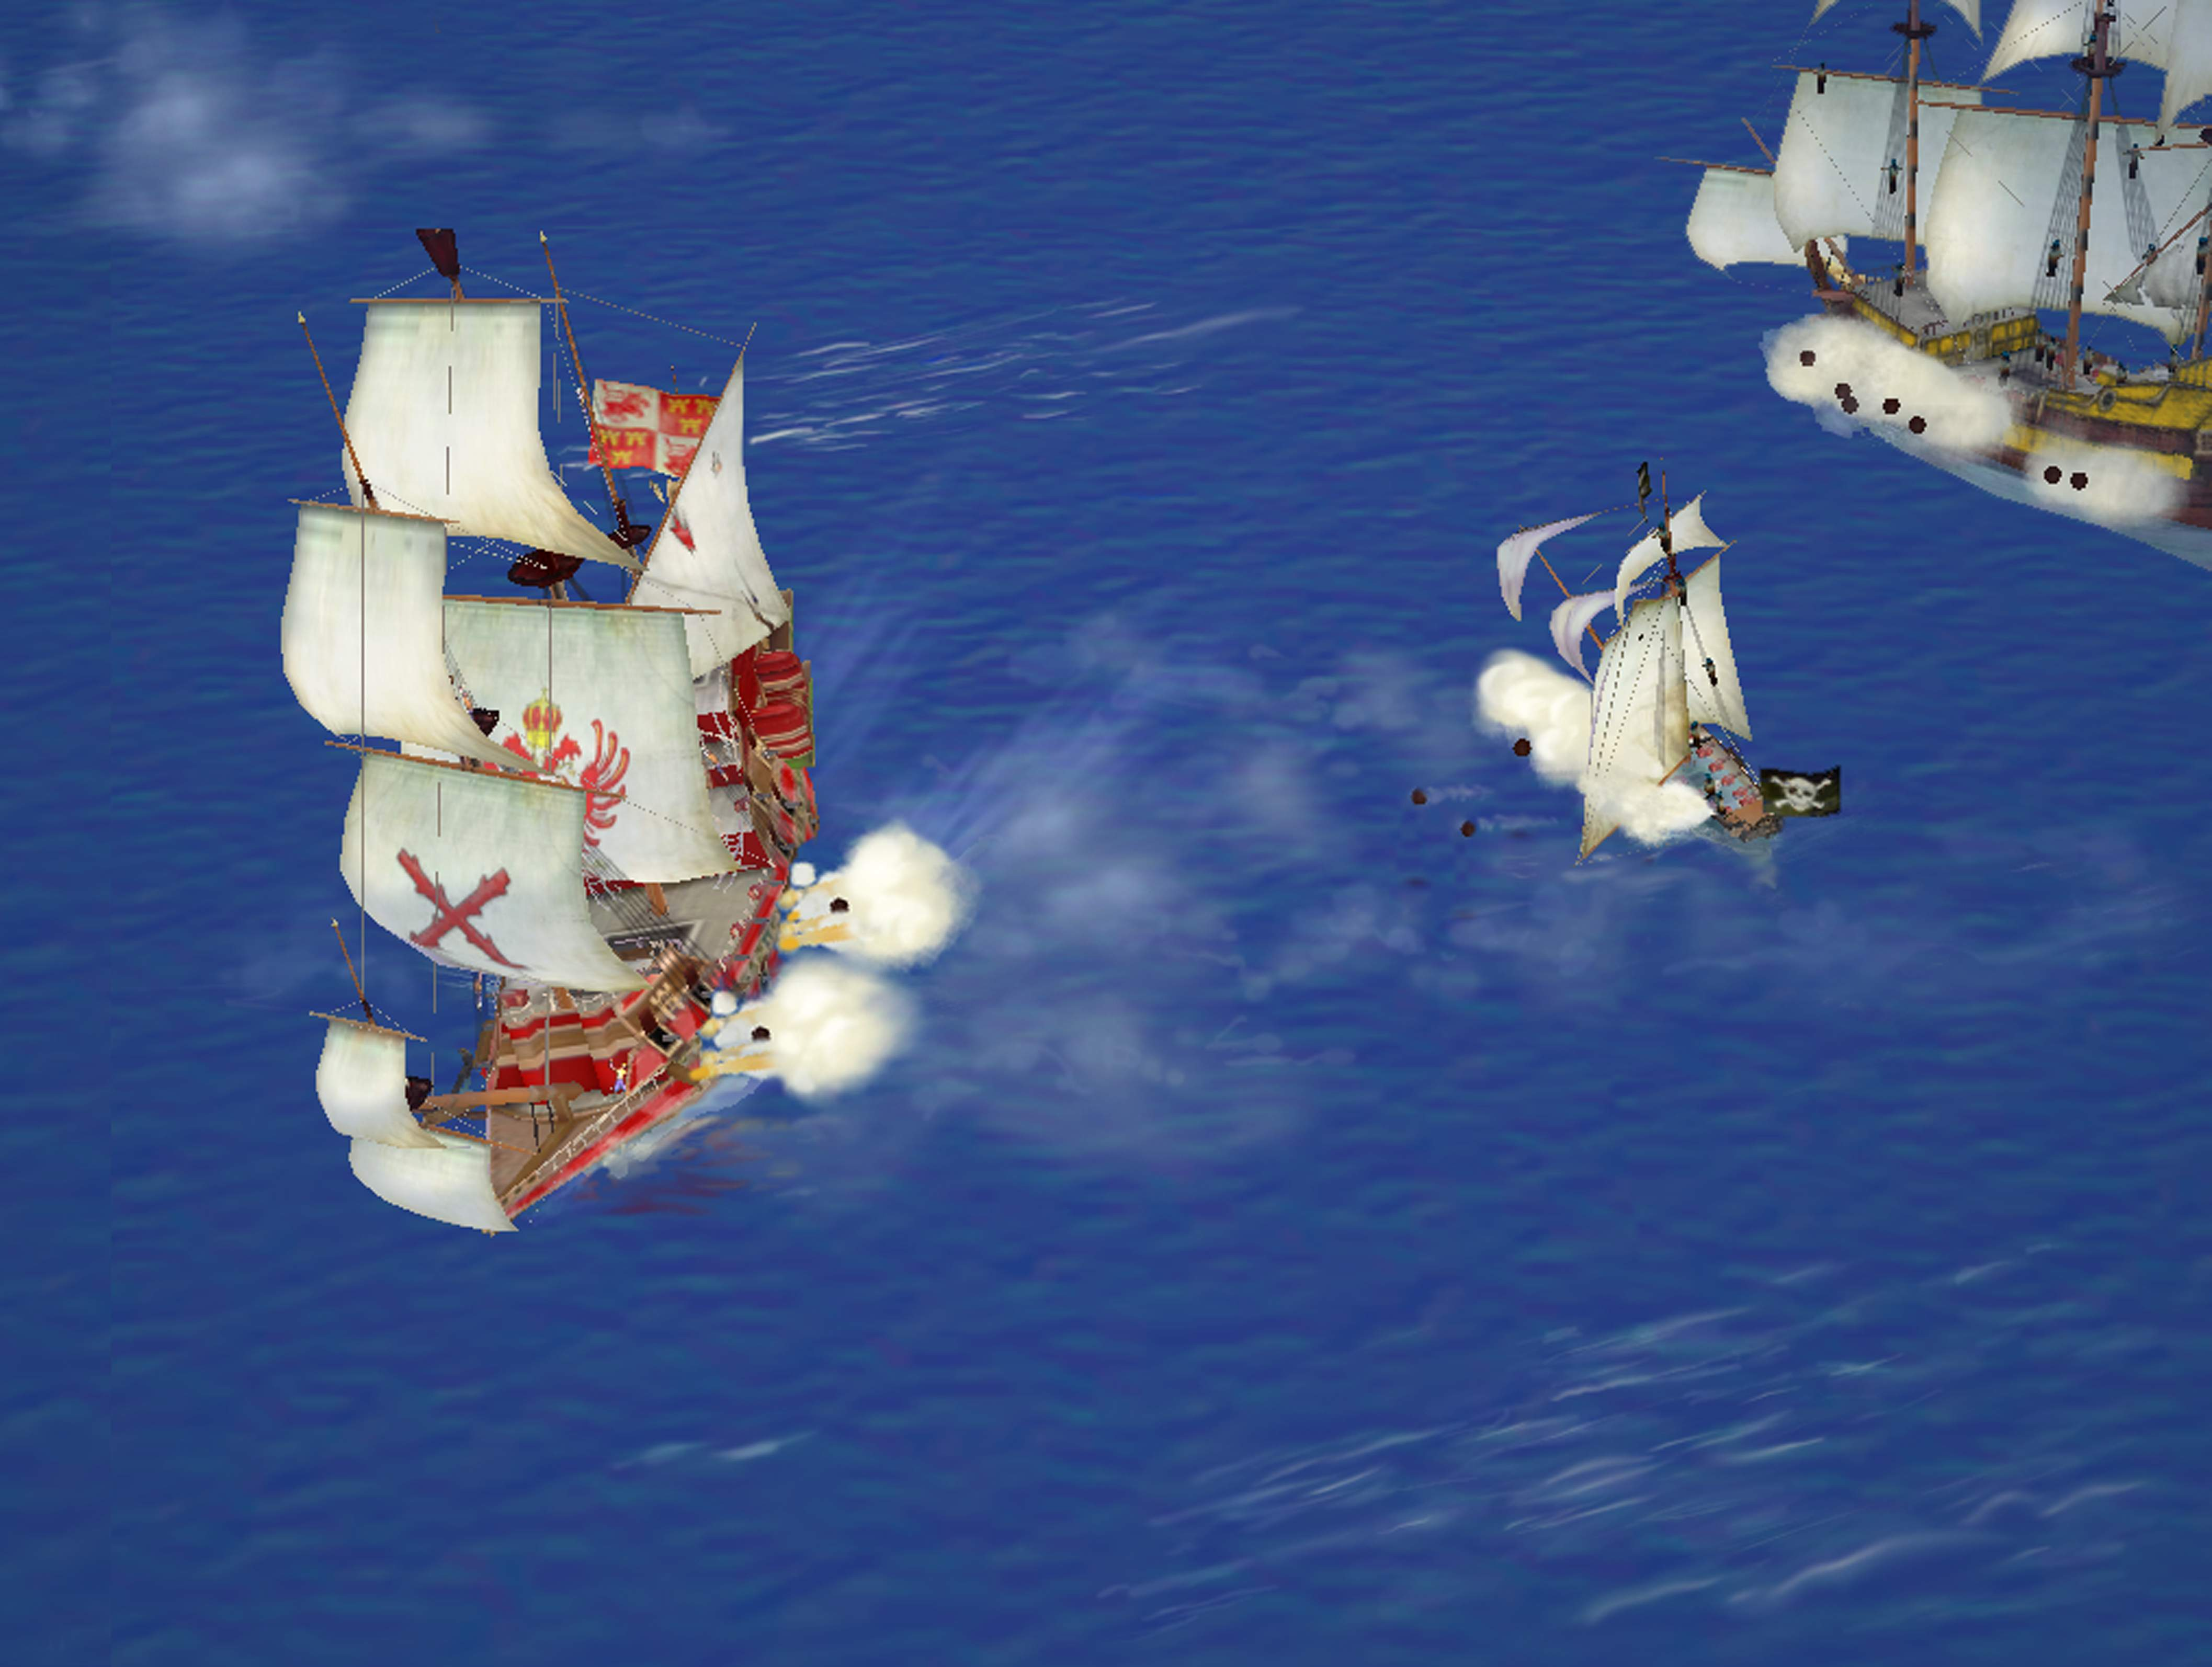 Sid meier's pirates nudity patch erotica images